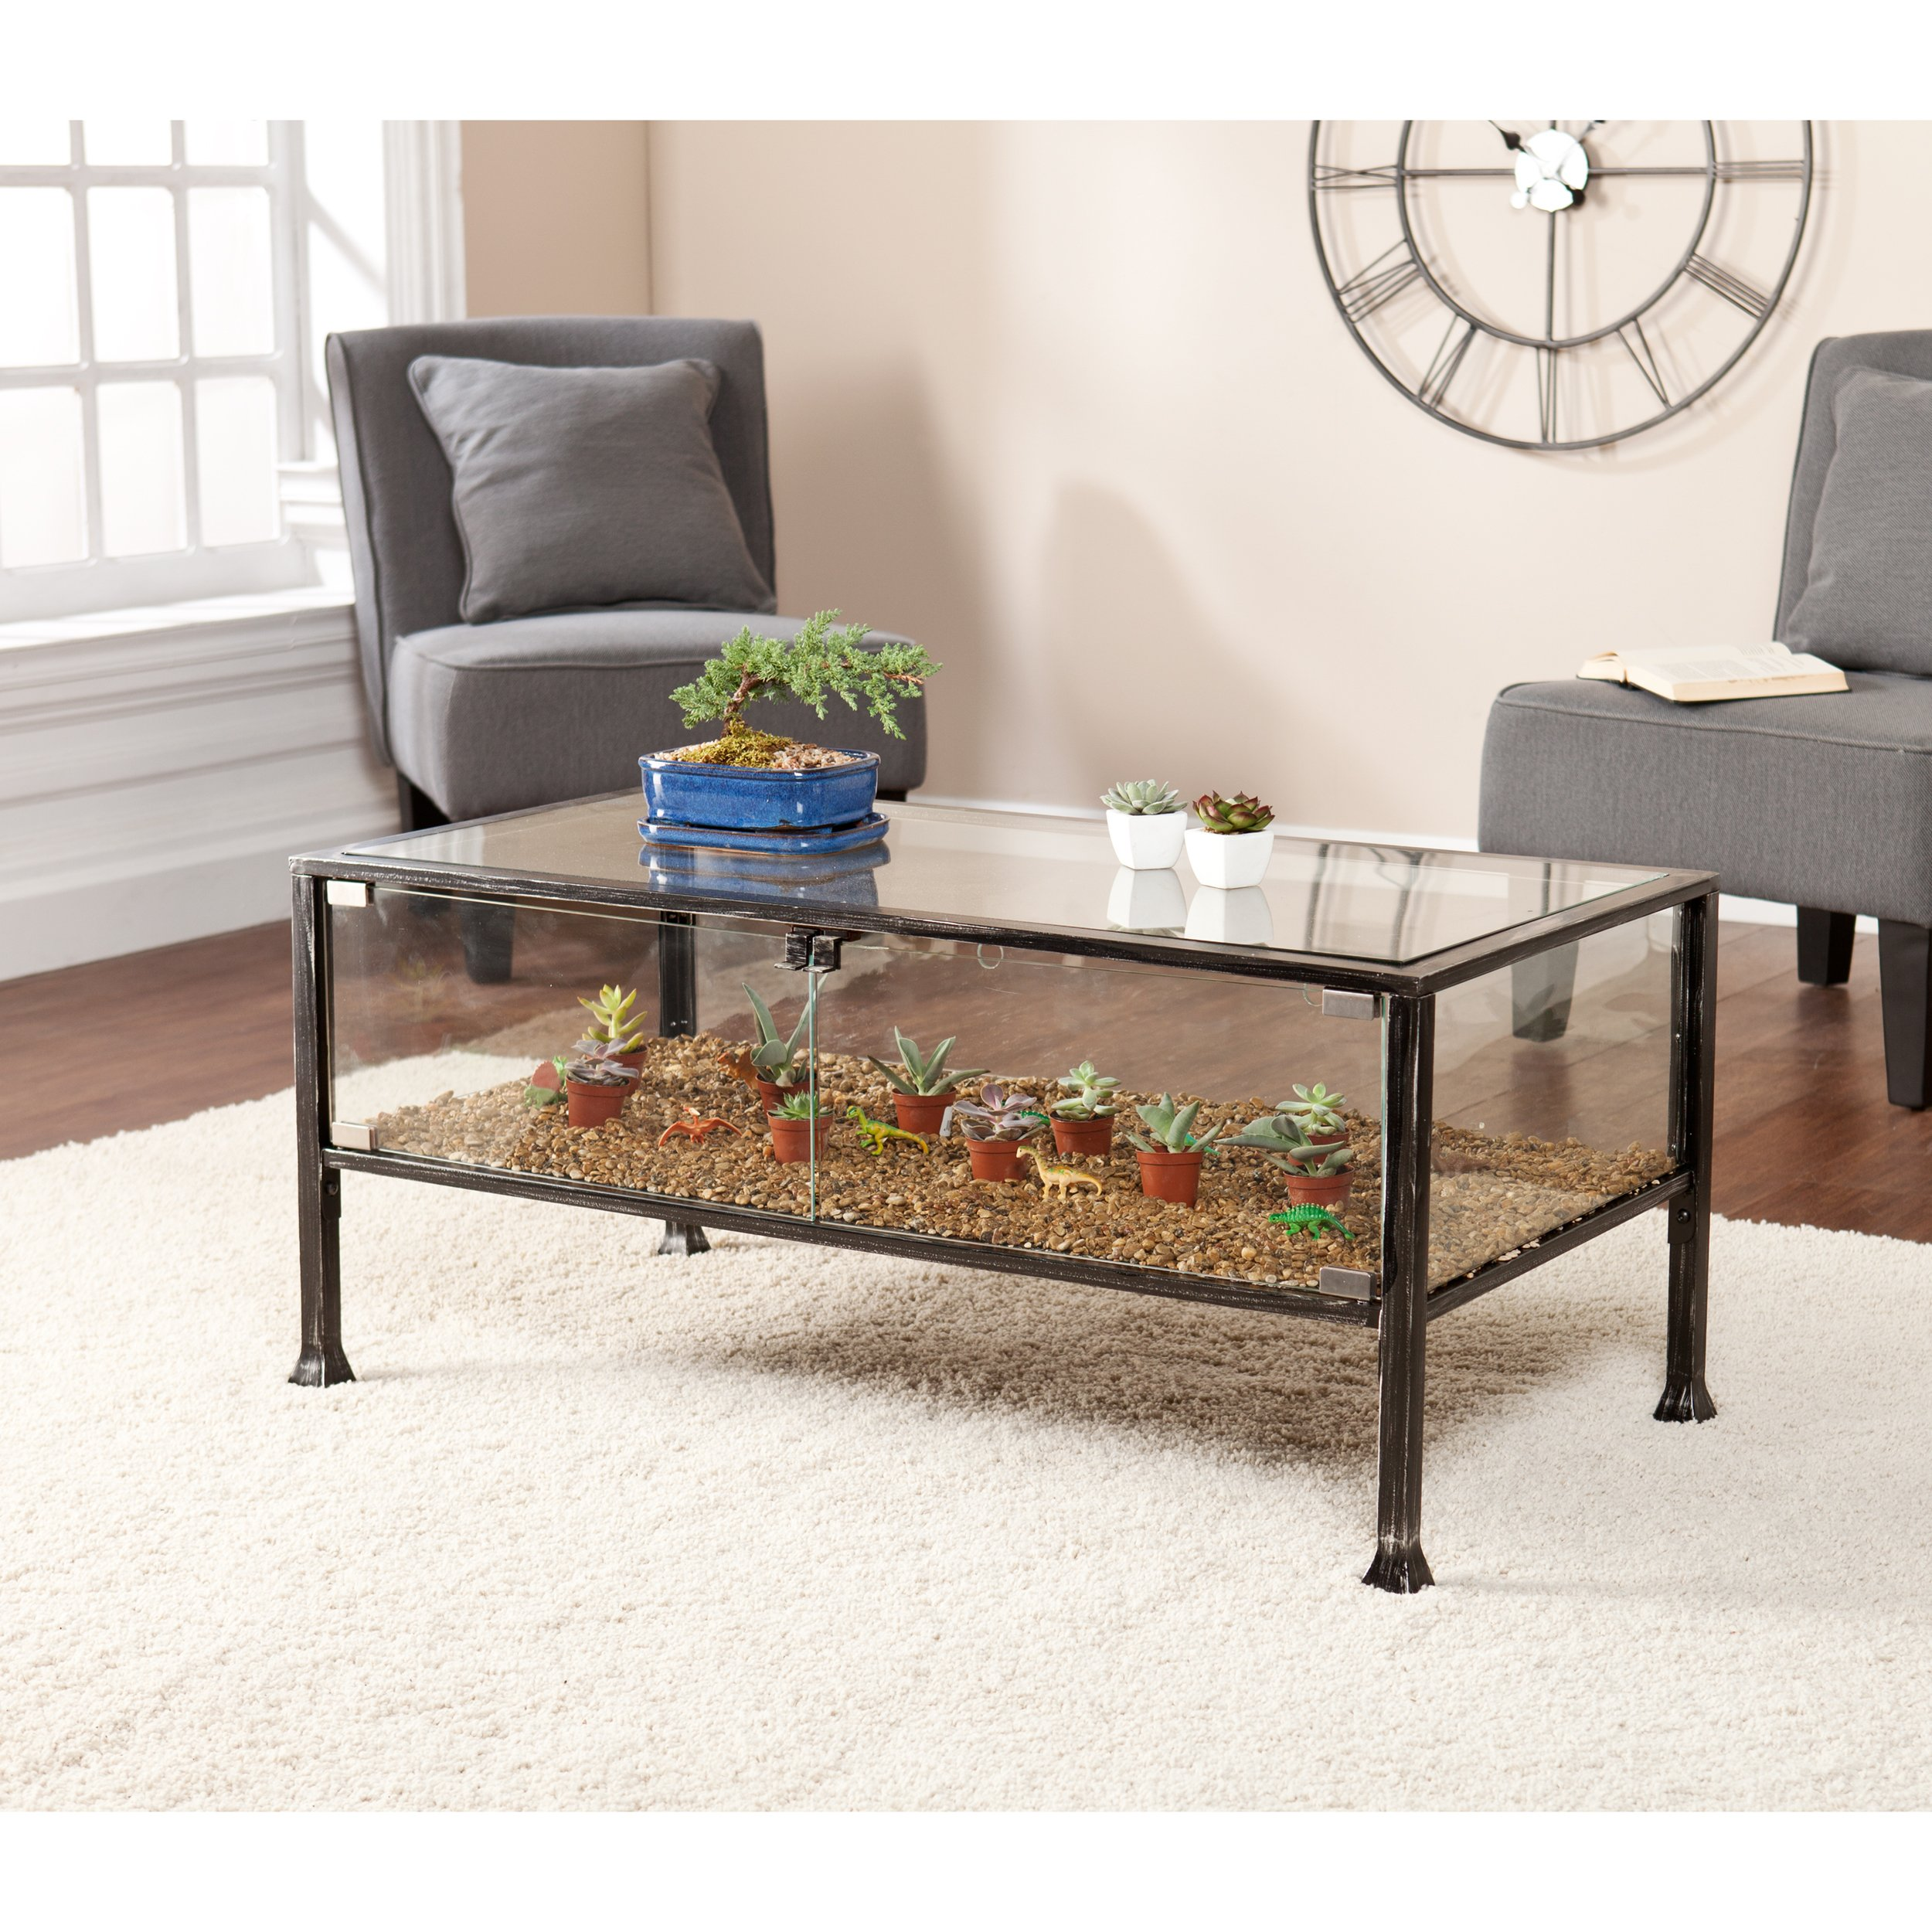 - Terrarium Display Cocktail Coffee Table - Glass Display For Plants